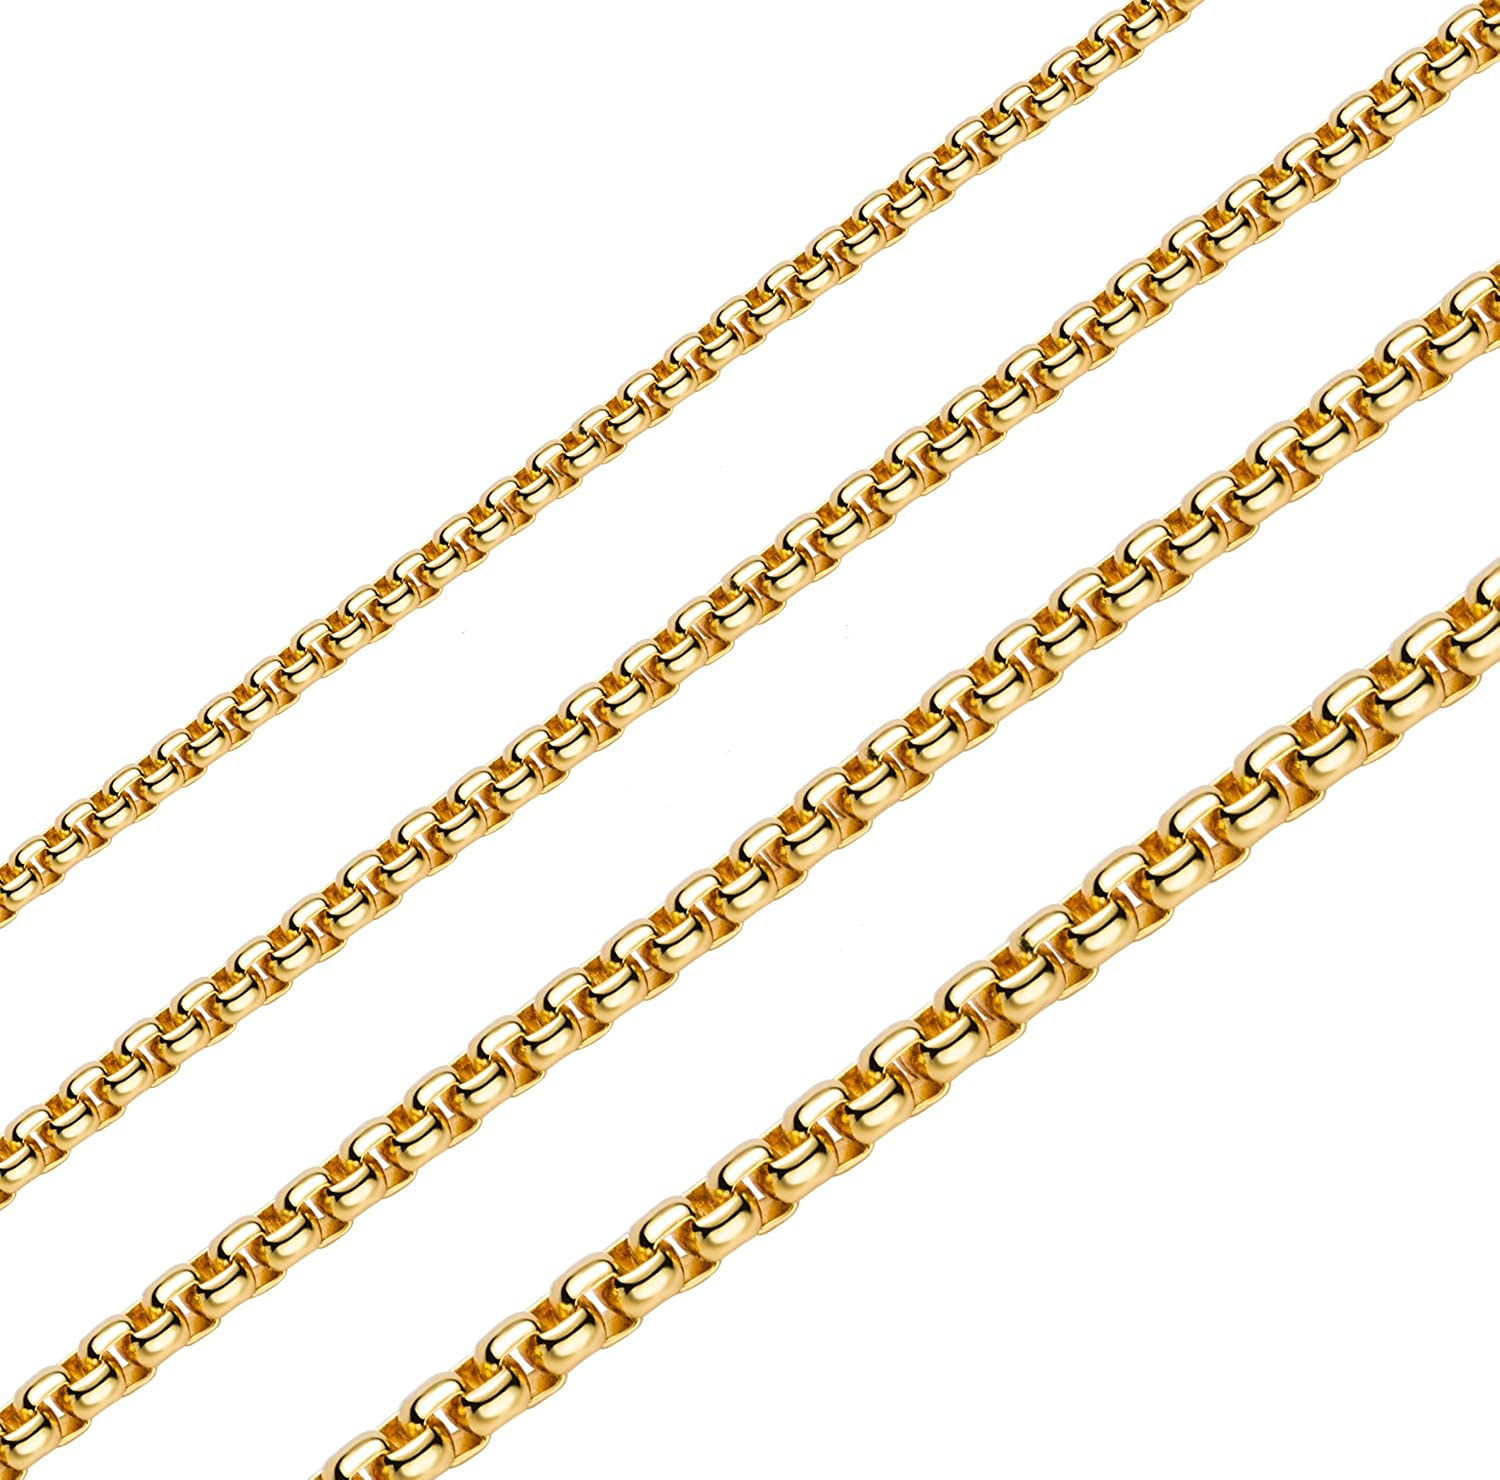 2MM 3MM 4MNM 5MM Square Rolo Chain Stainless Steel Round Box Necklace Men Women Jewelry